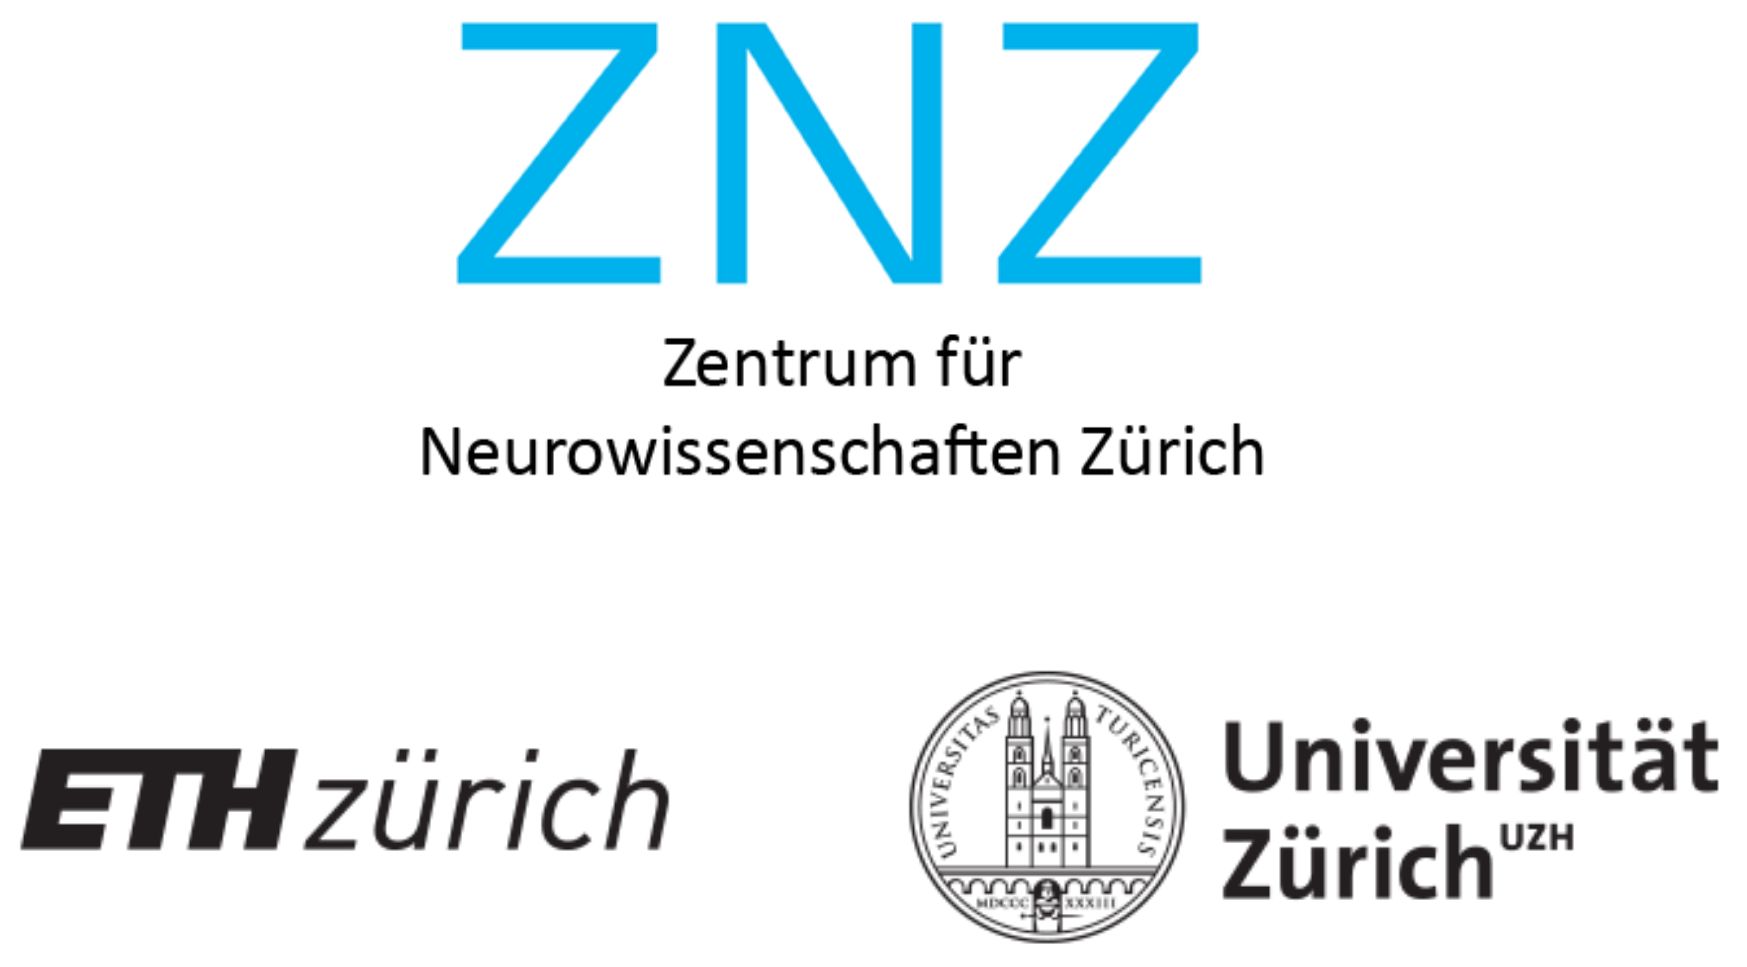 Neurocenter Science Zurich - NCCR Evolving Language Partner, National Centre of Competence in Research